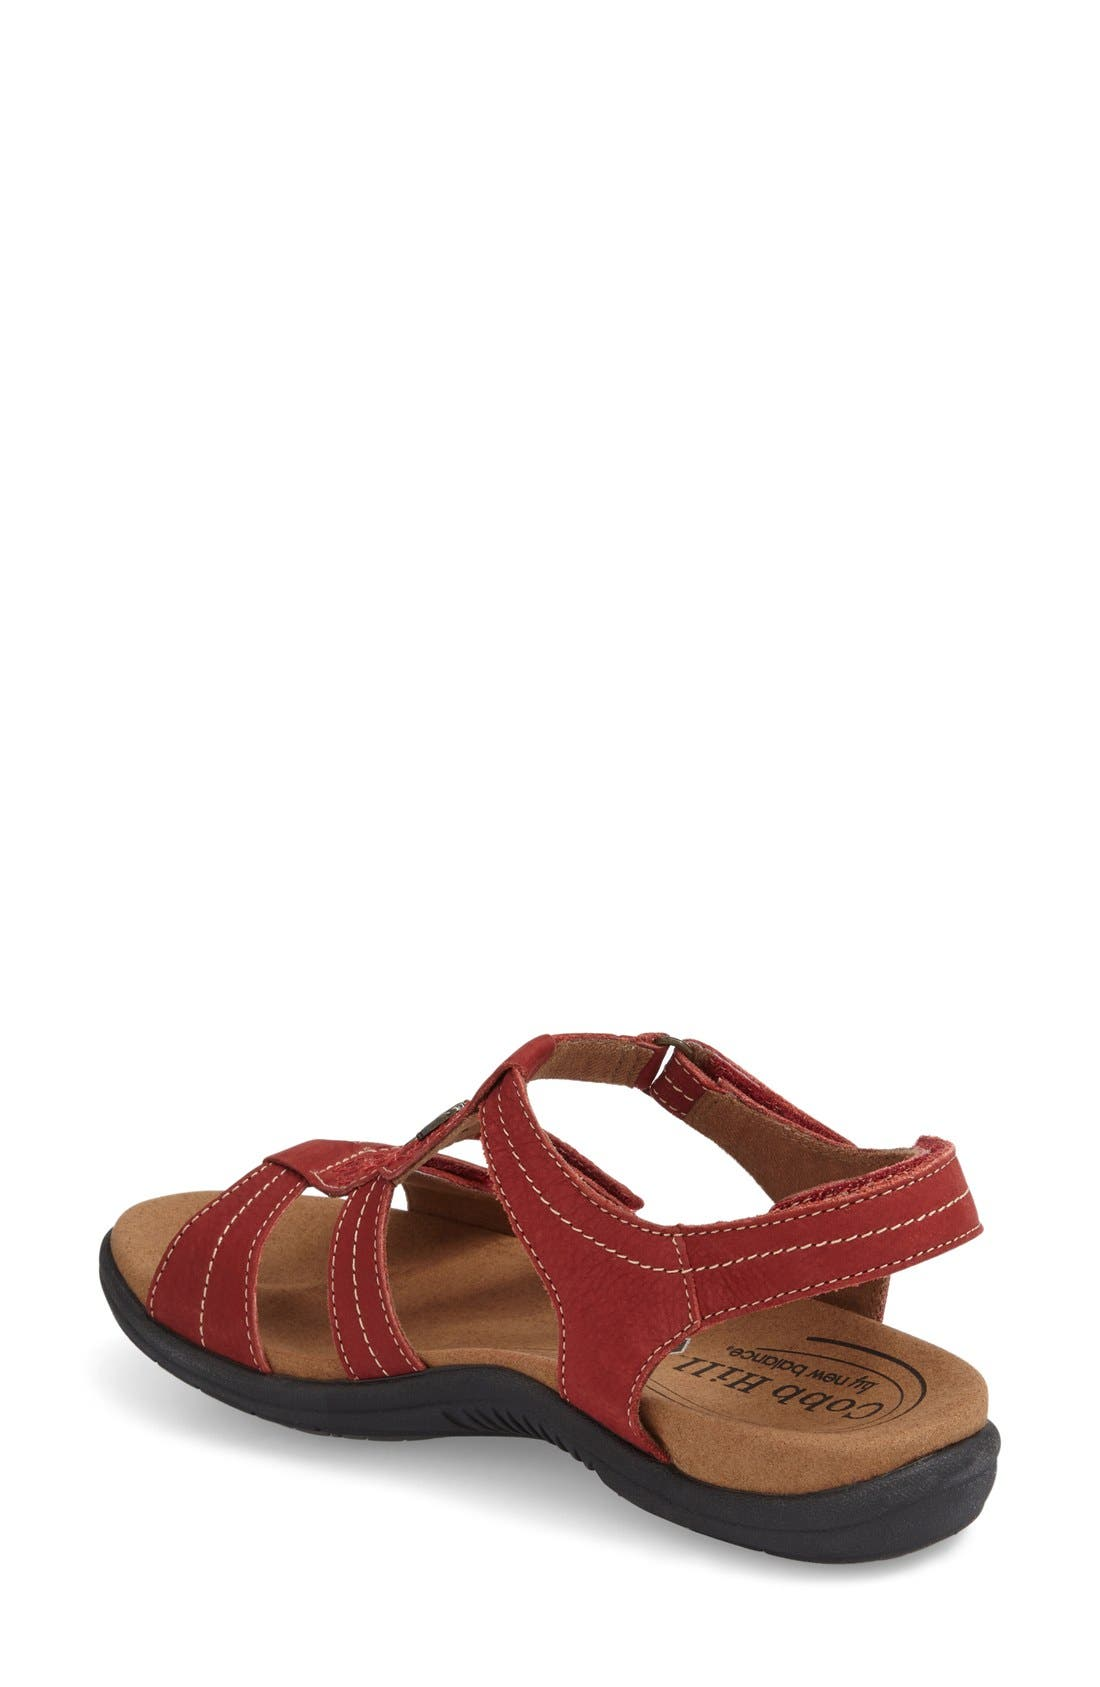 Alternate Image 2  - Cobb Hill 'Soothe' REVswoon™ Slide Sandal